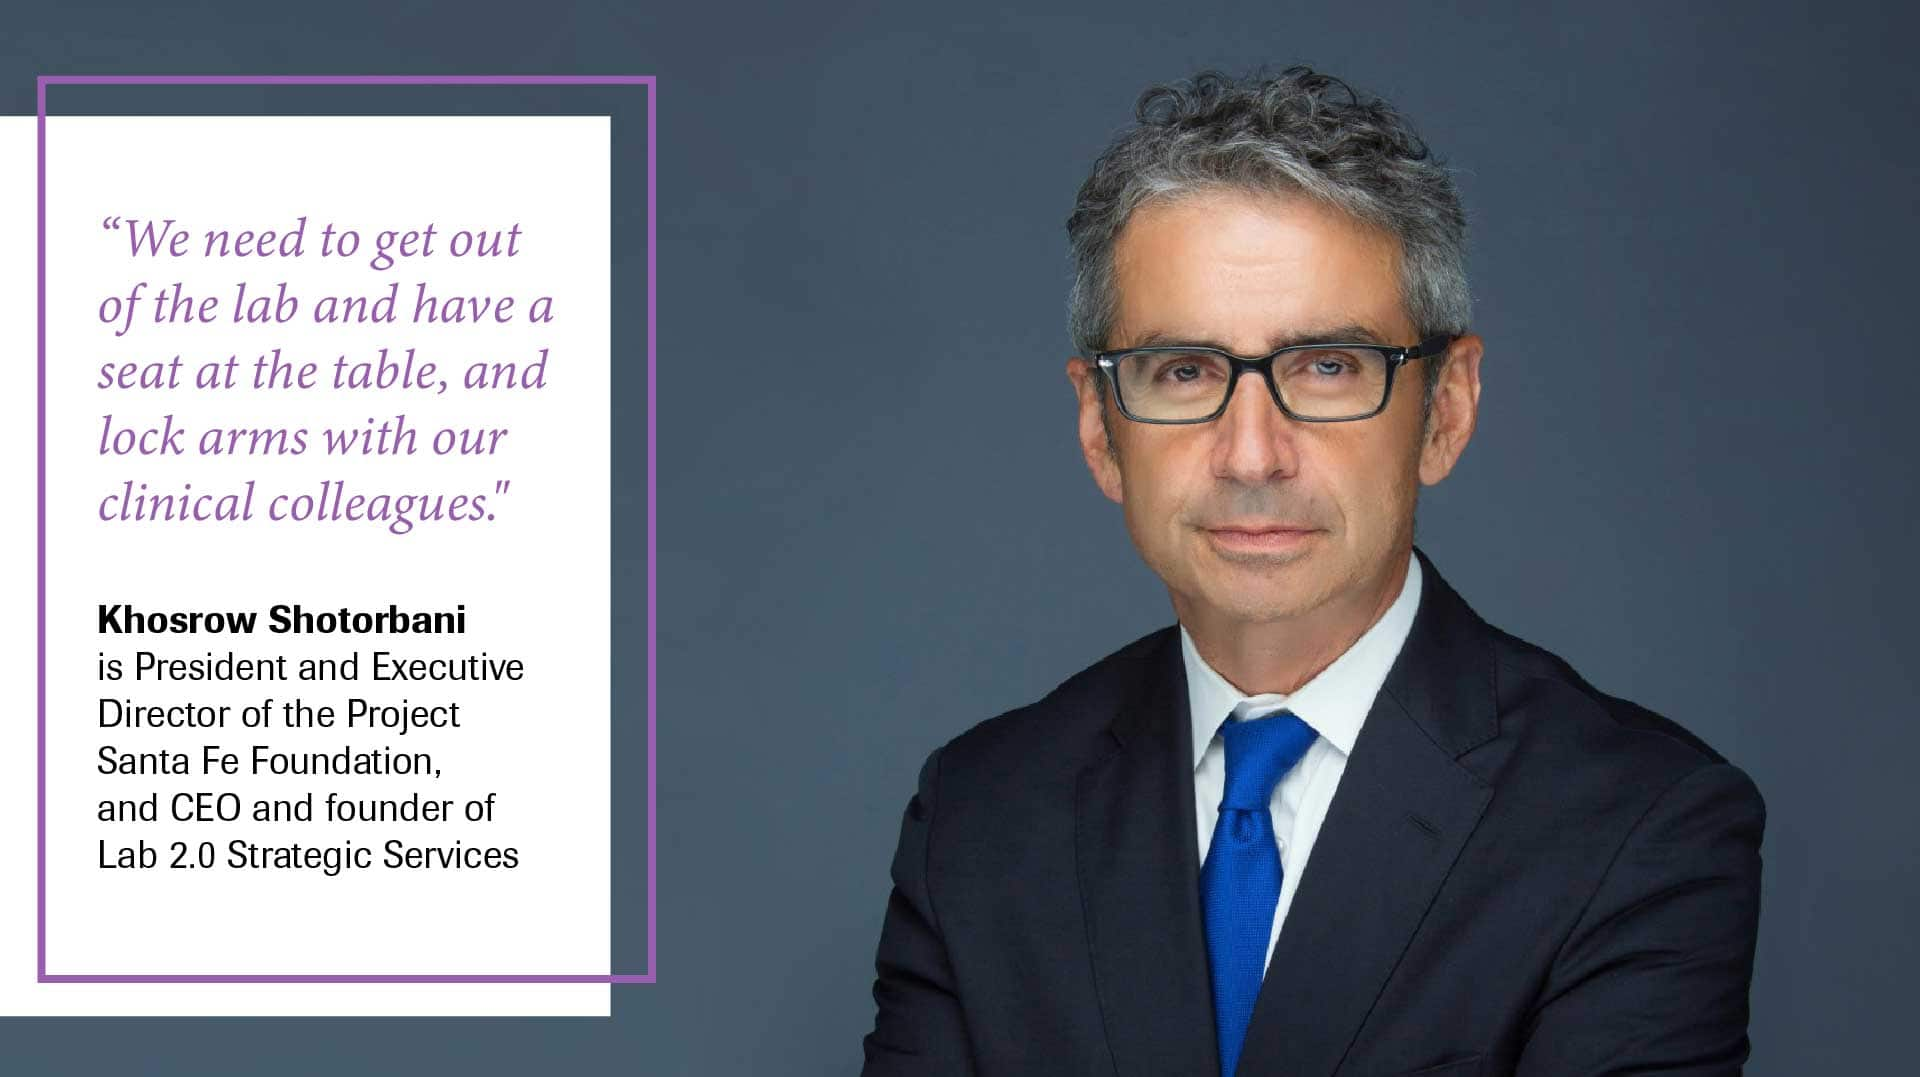 A quote from Khosrow Shotorbani, founder of Lab 2.0 Strategic Services, on how the diagnostics sector can evolve.